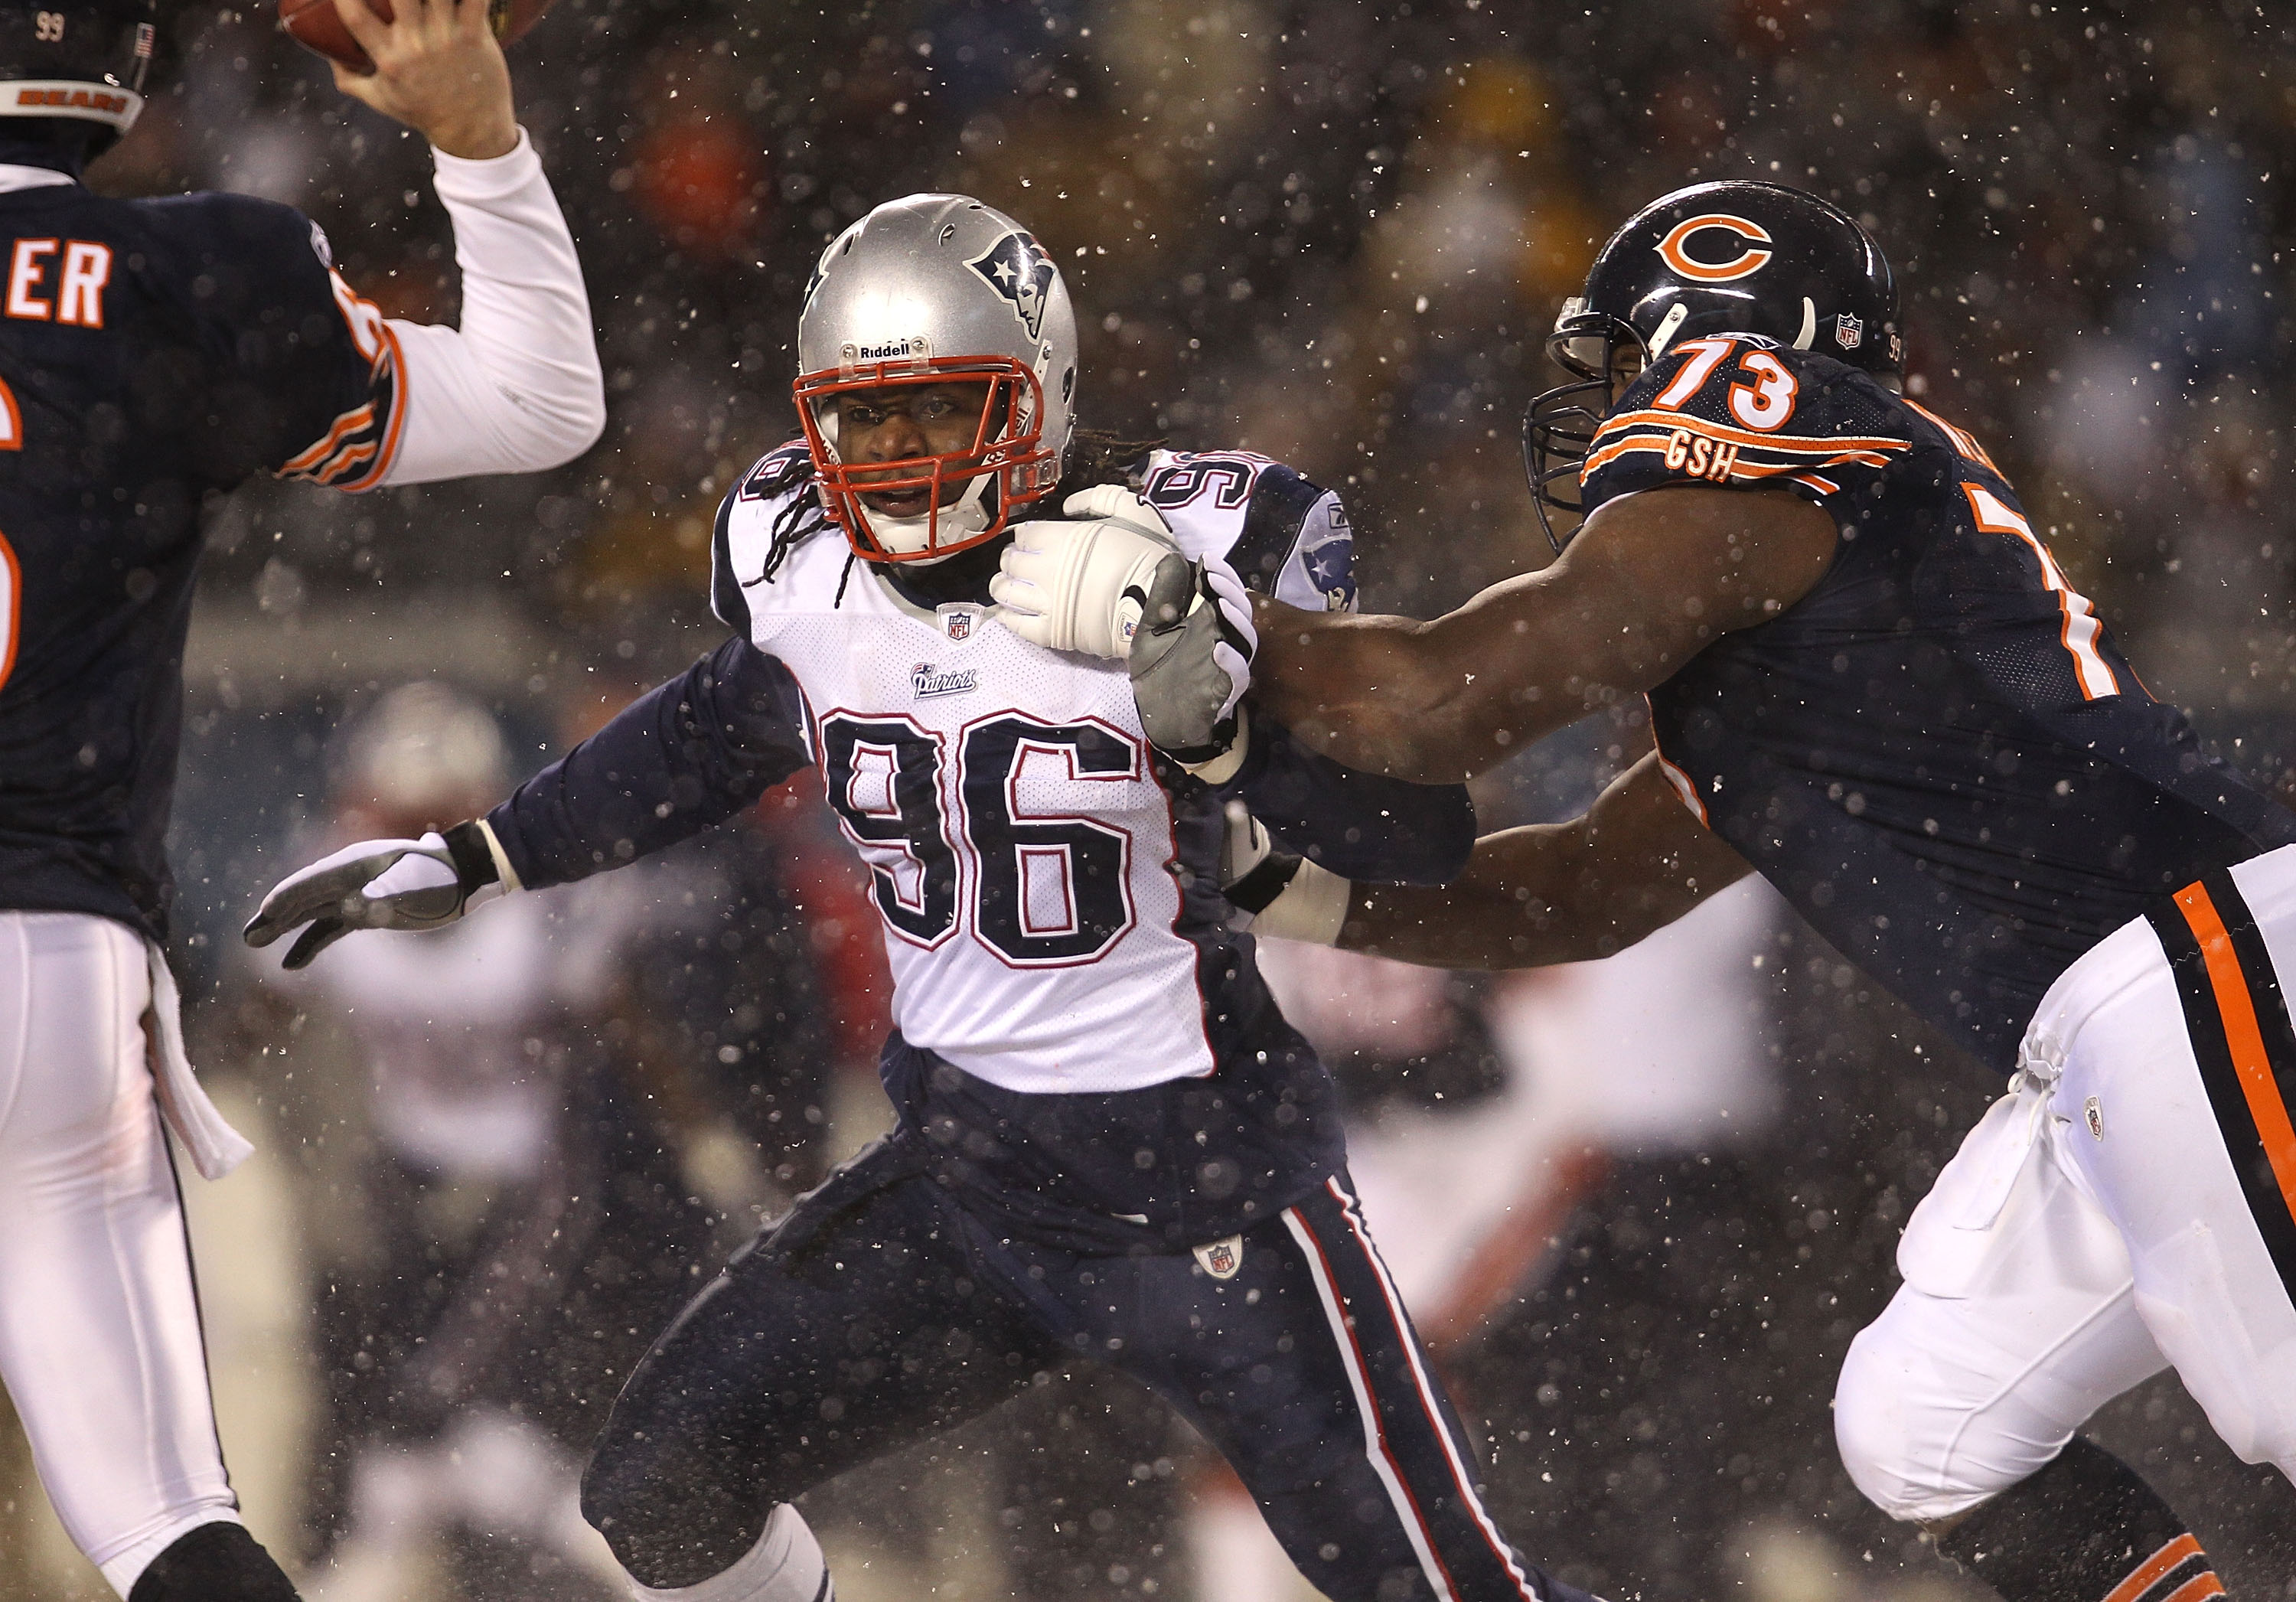 CHICAGO, IL - DECEMBER 12: Jermaine Cunningham #96 of the New England Patriots rushes past J'Marcus Webb #73 of the Chicago Bears towards Jay Cutler #6 at Soldier Field on December 12, 2010 in Chicago, Illinois. The Patriots defeated the Bears 36-7. (Phot